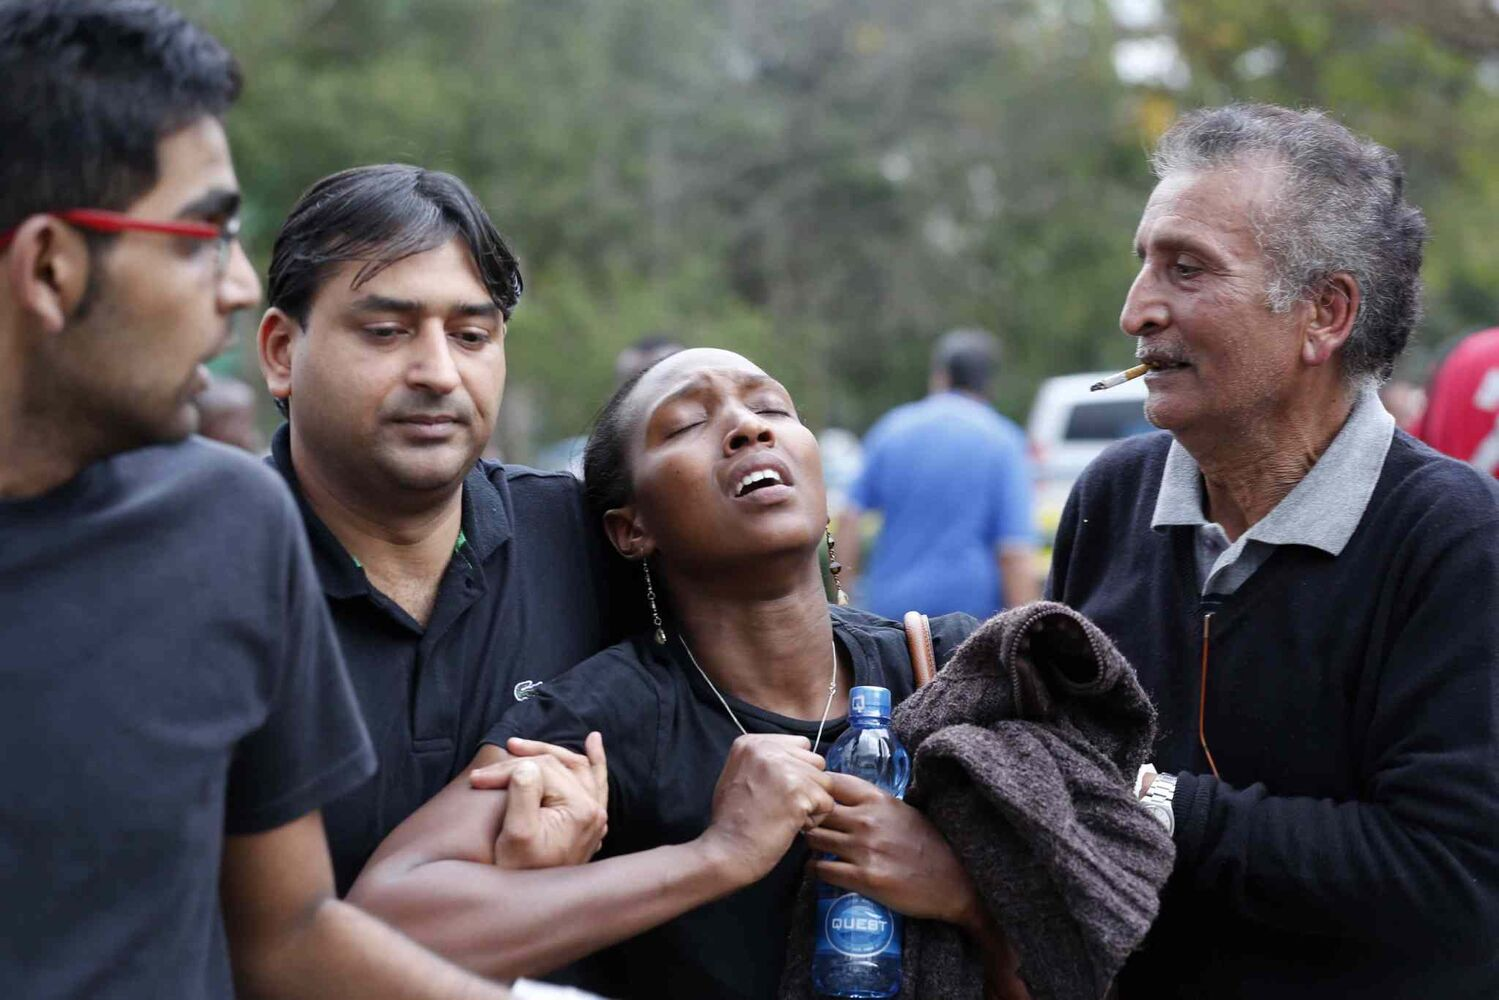 A woman is rescued from the Westgate Mall in Nairobi, Kenya on Saturday after a gun battle inside the shopping centre left at least 39 people dead after terrorists attacked one of the city's most exclusive malls.